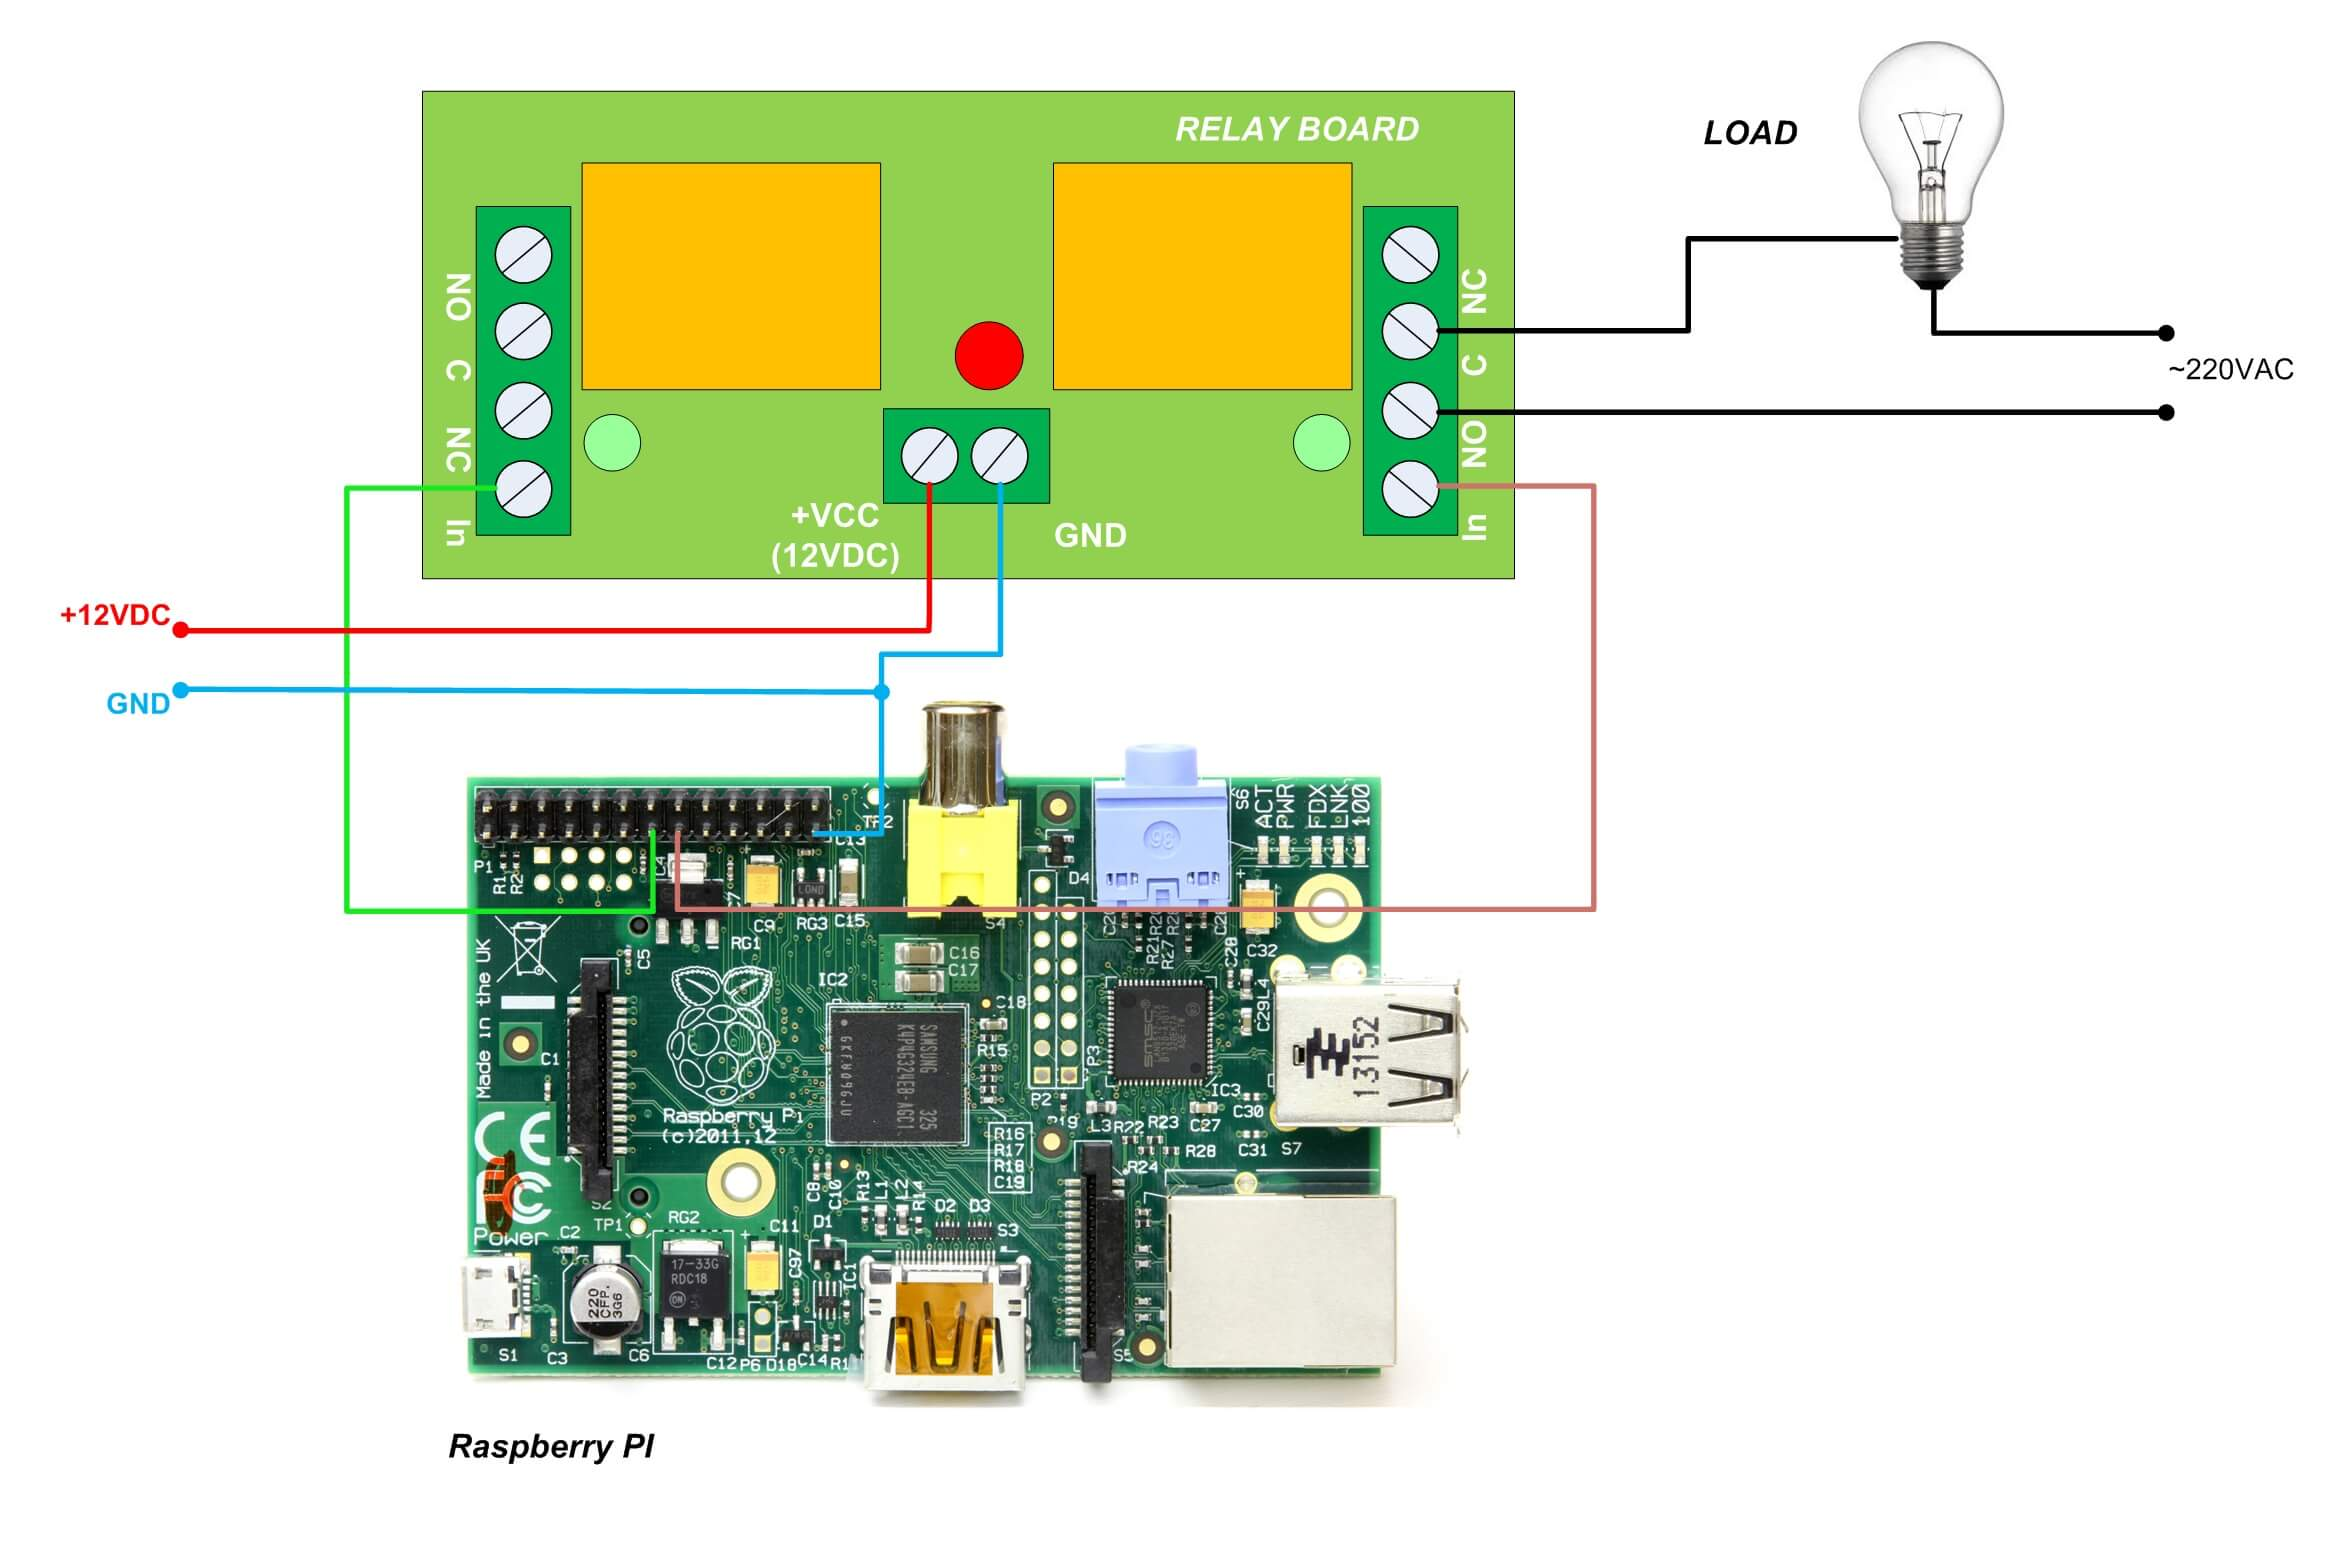 Raspberry Pi Relay Wiring Diagram Wiring Diagram Libraries